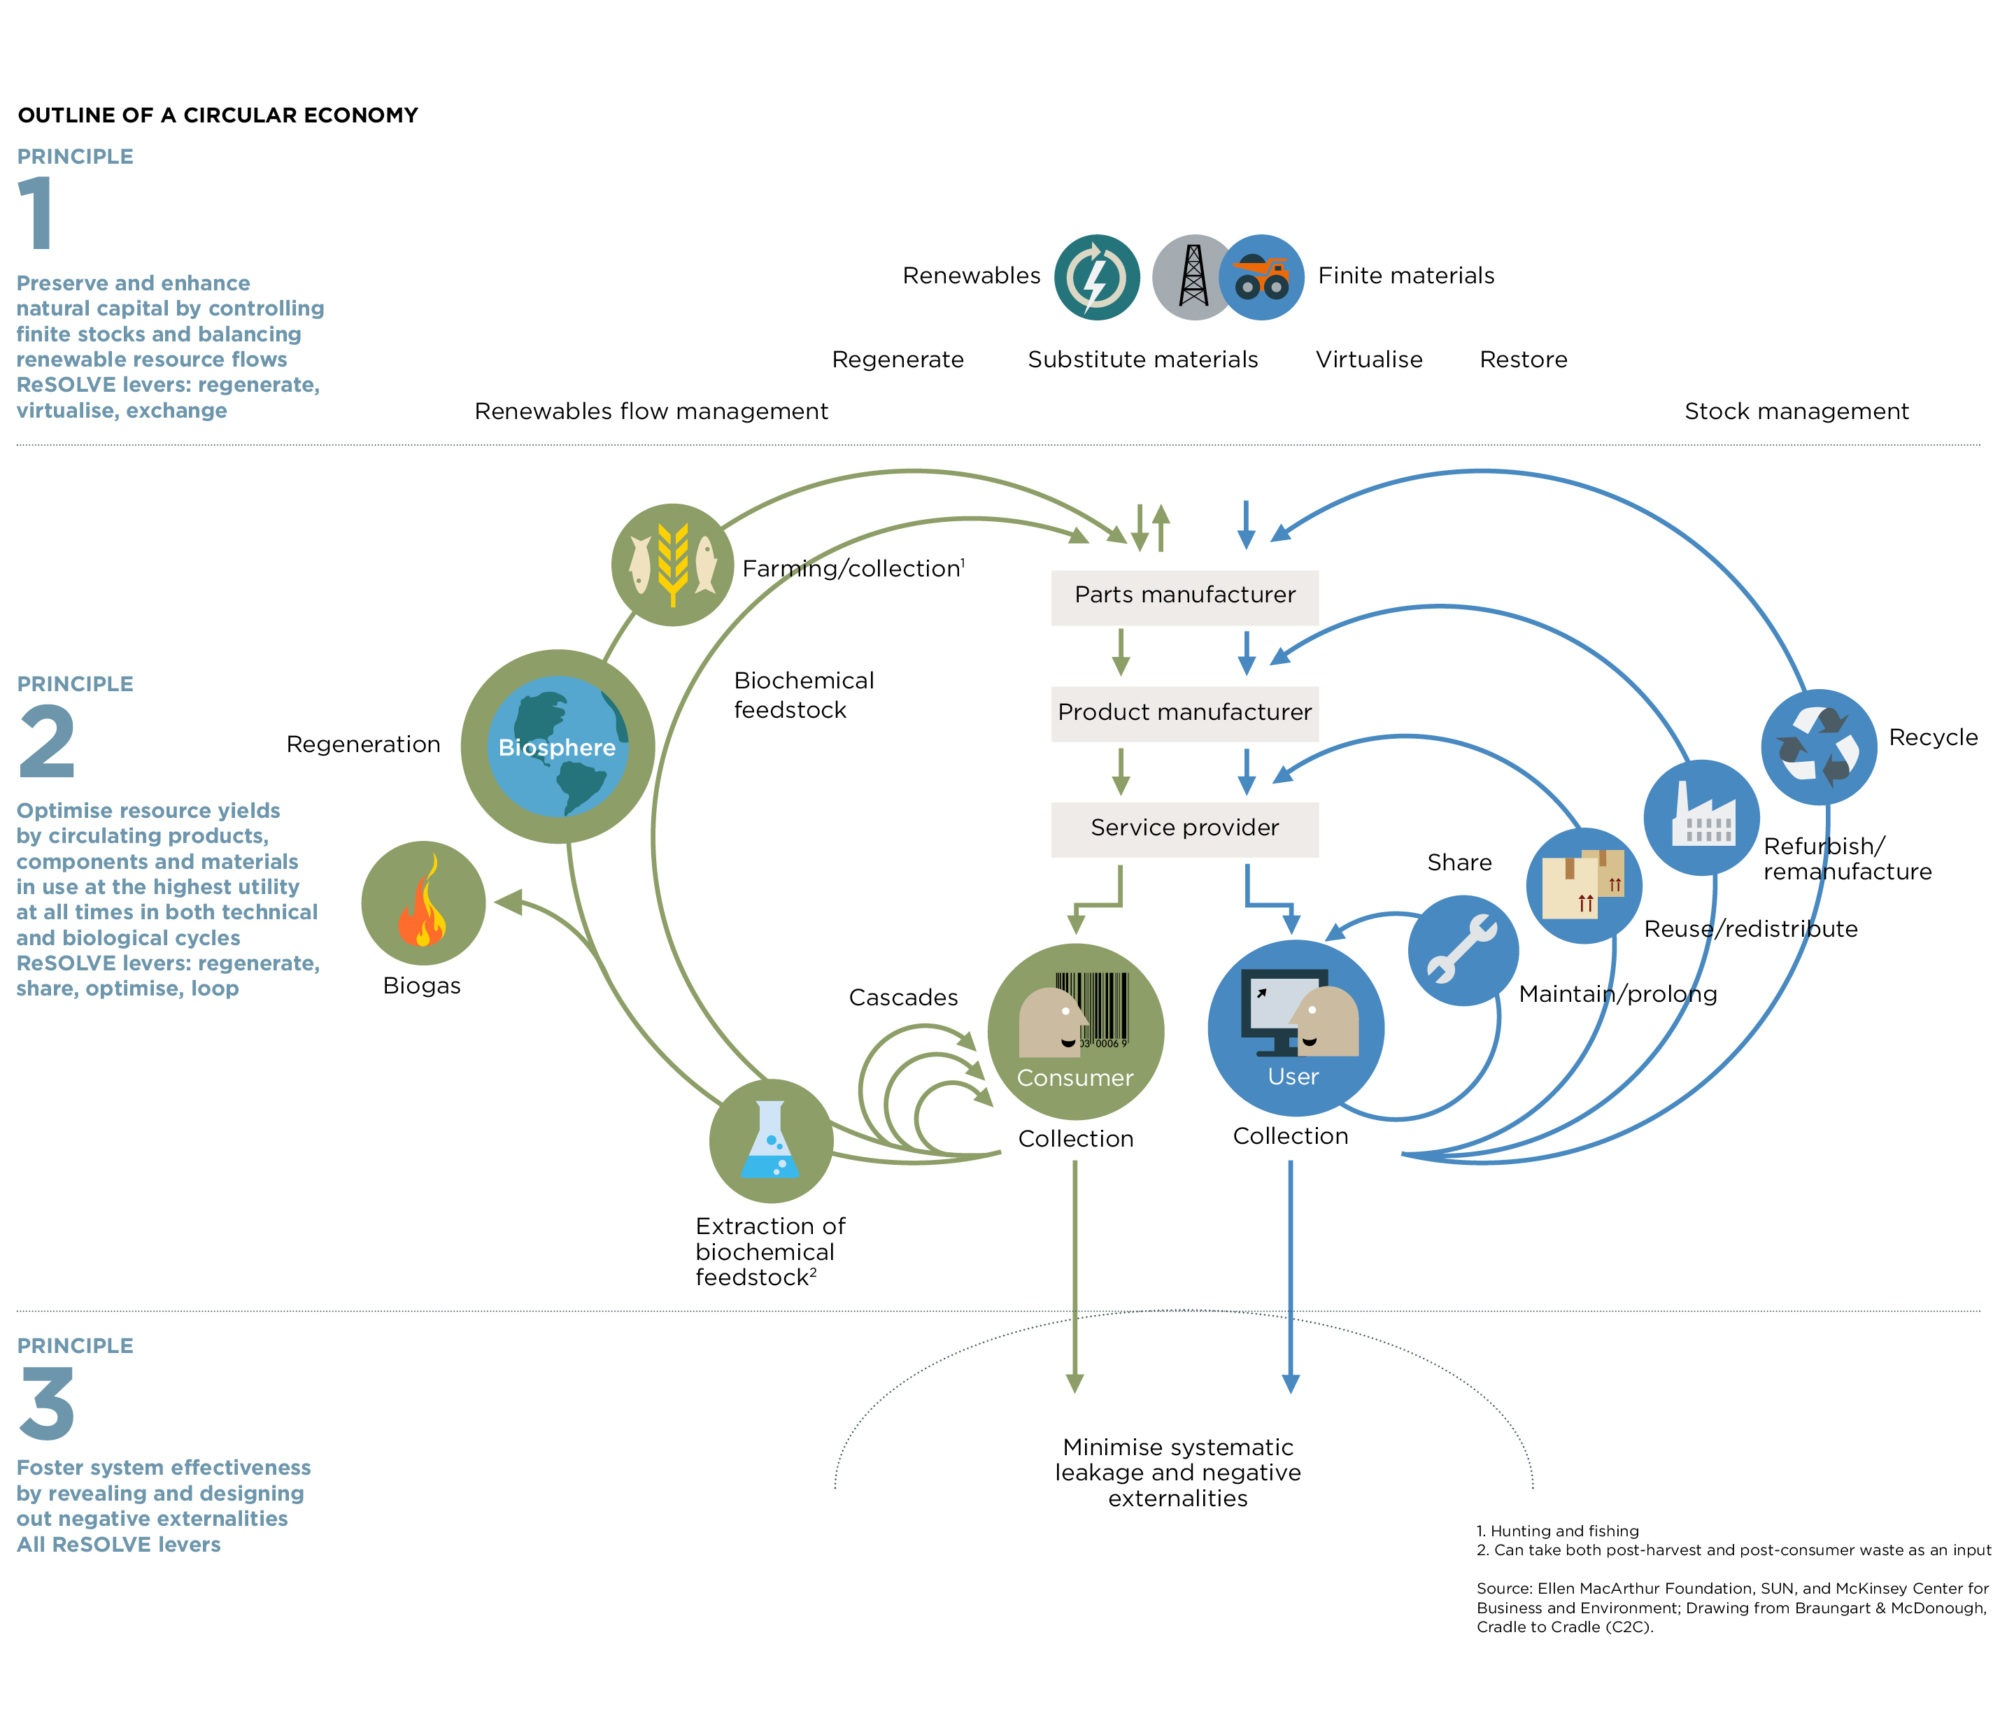 """Circular Economy System Diagram"" from the  Ellen MacArthur Foundation"